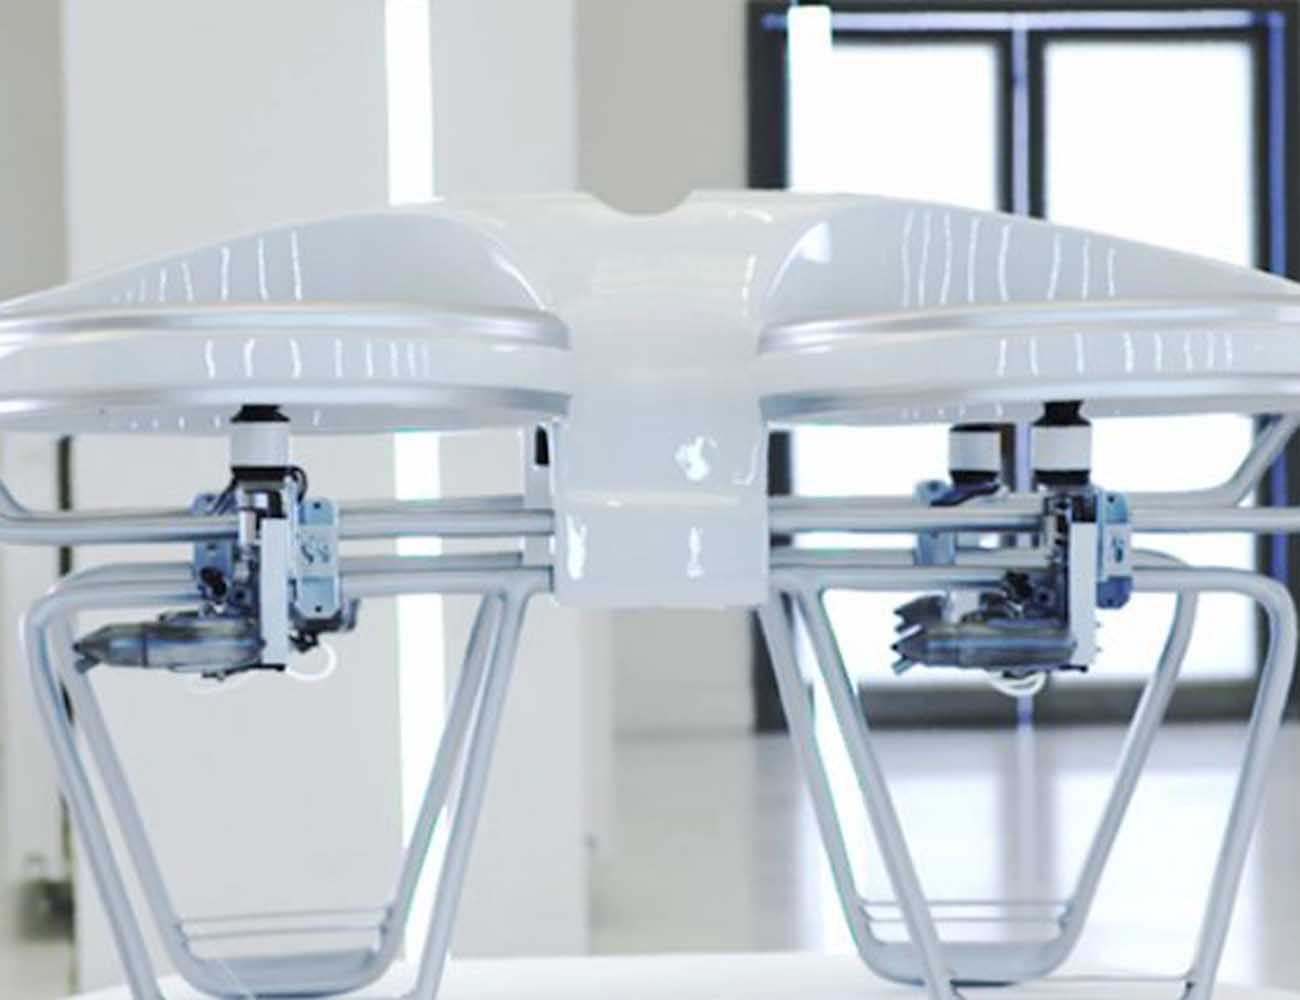 yeair! The Quadcopter Of The Future